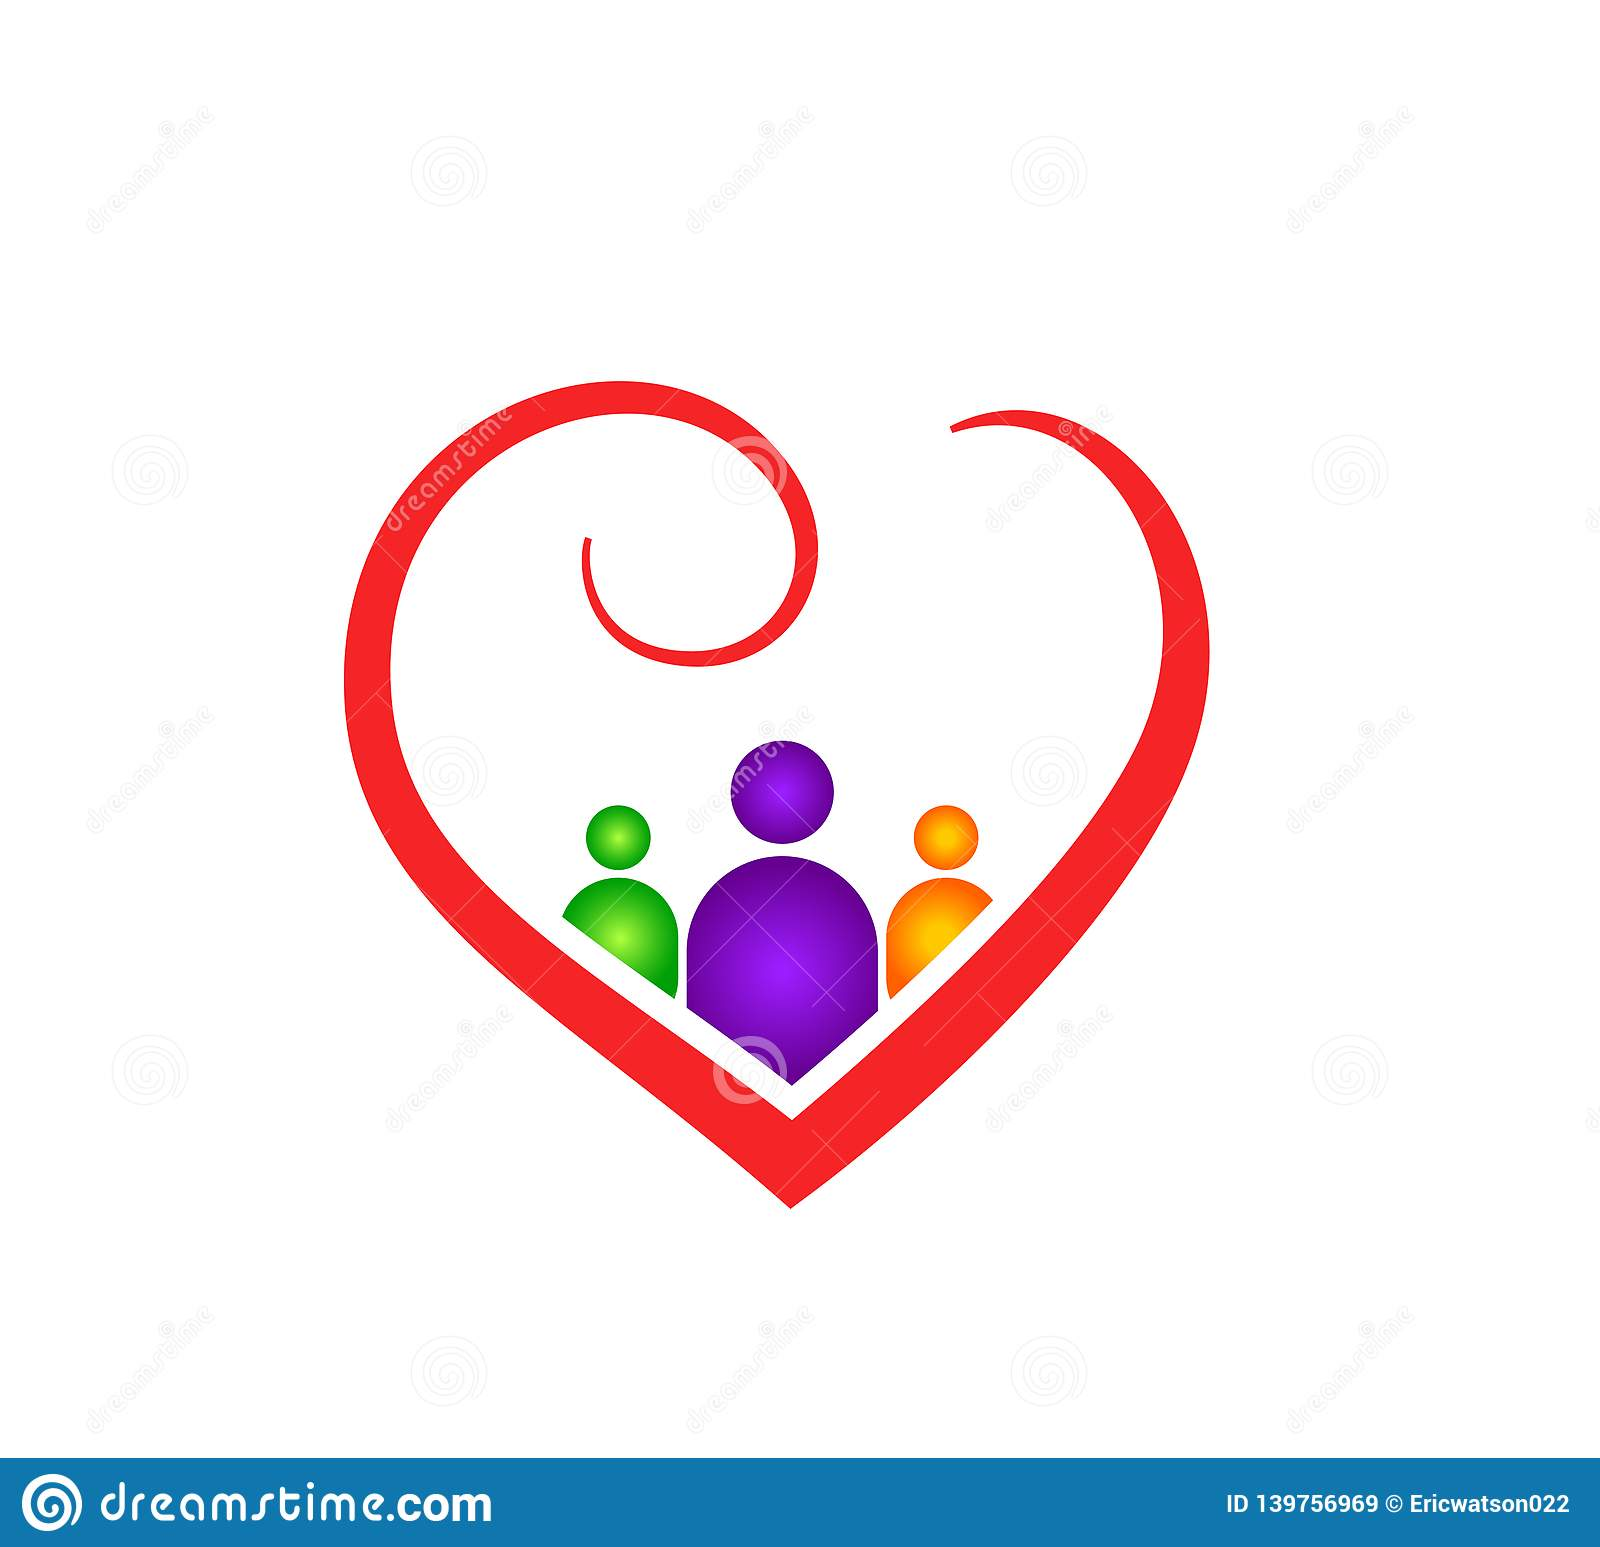 Abstract Heart Shape Outline With People Inside Family